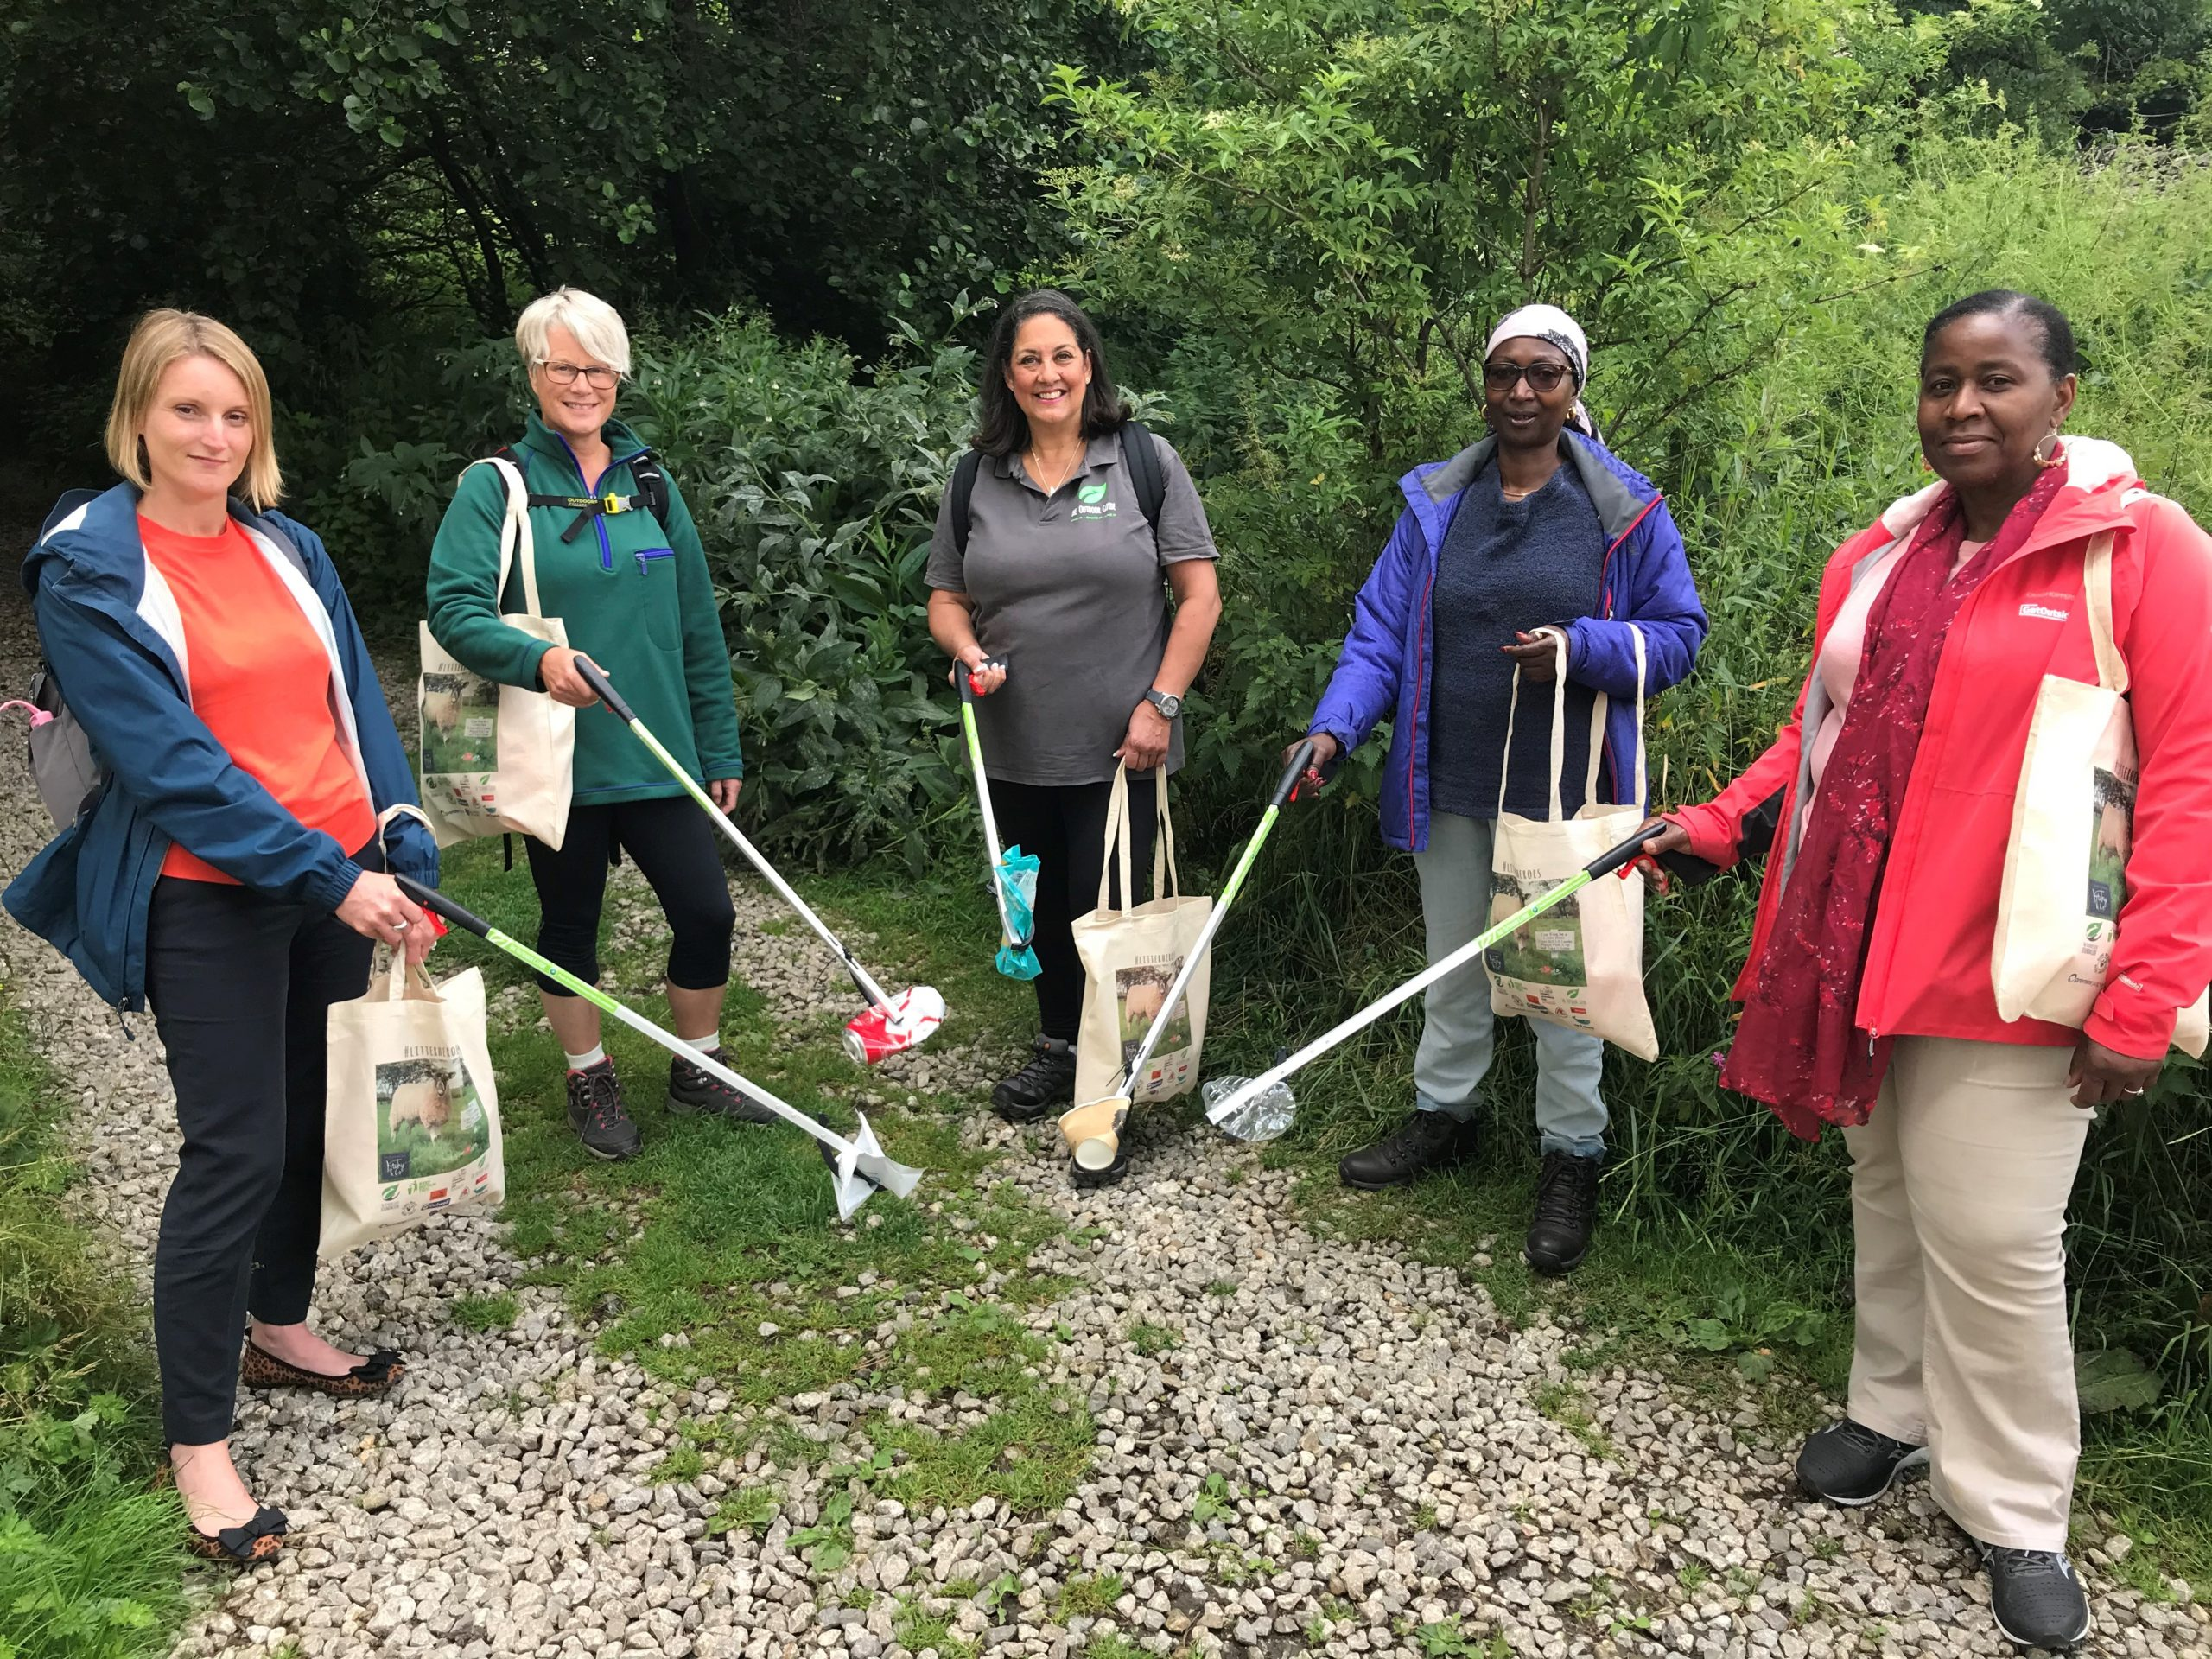 A group of volunteers smile at the camera as they hold up litter pickers with various pieces of rubbish